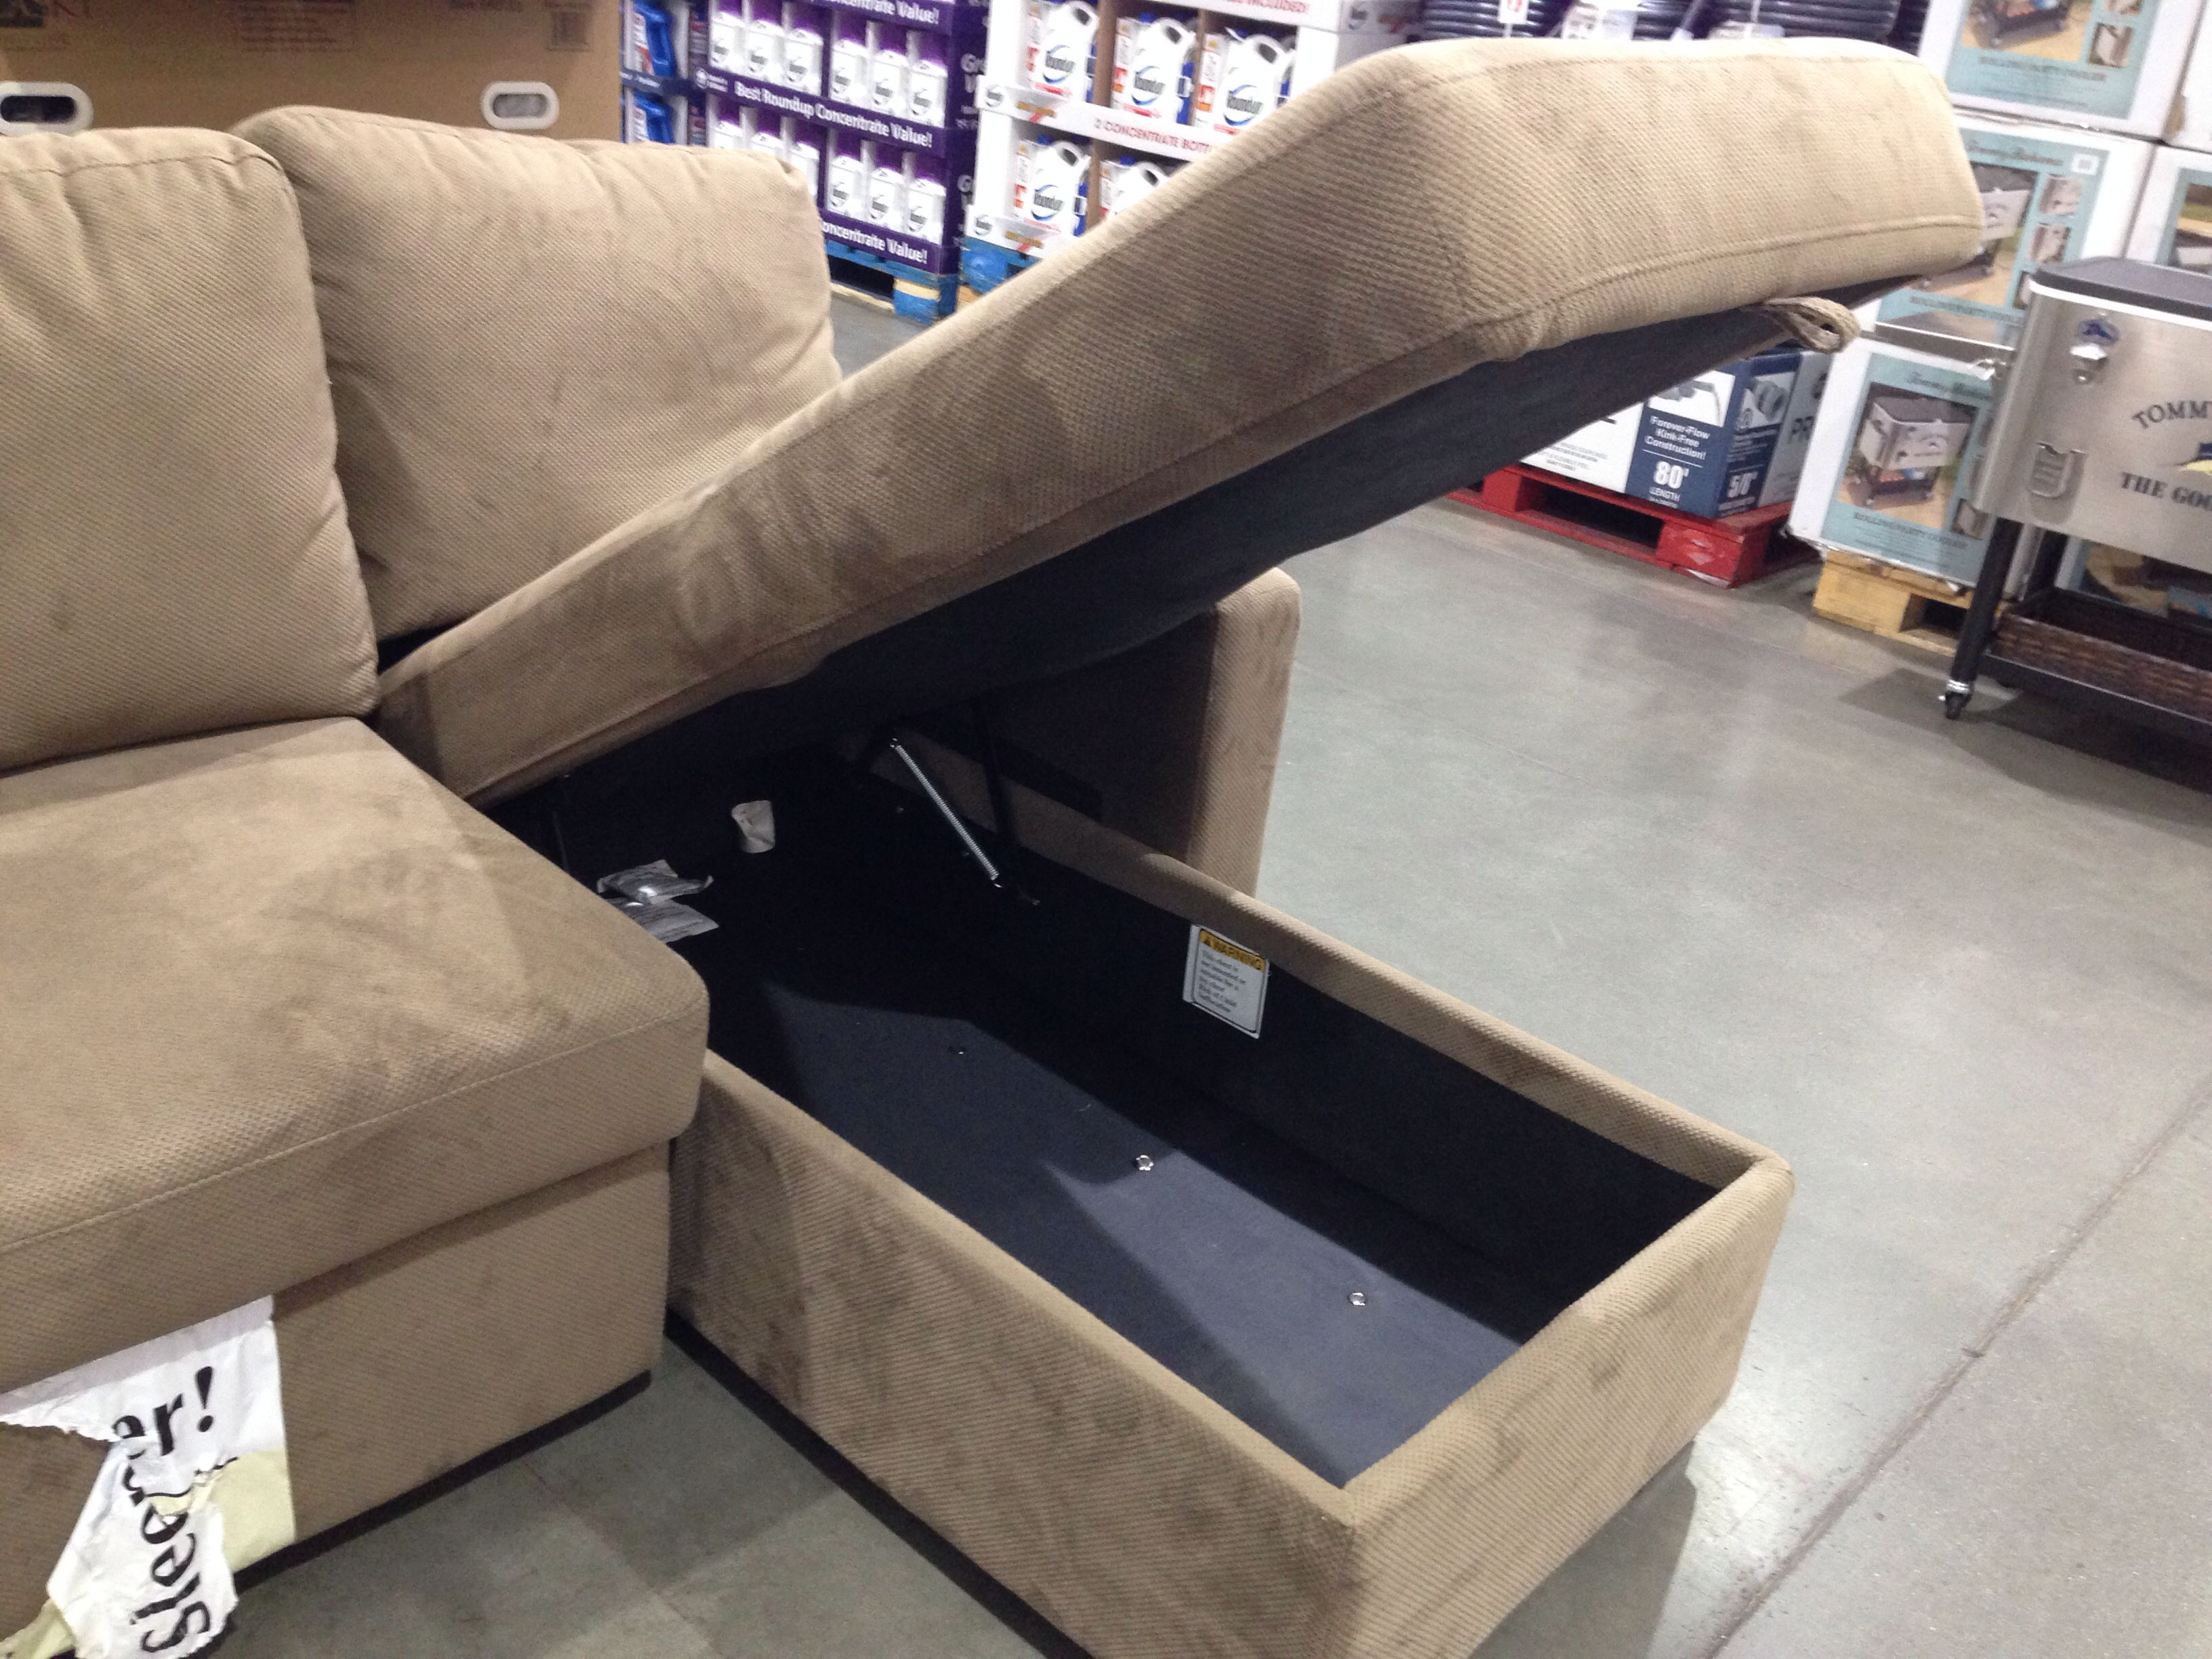 Costco couch opens for Storage For Rochelle Pinterest